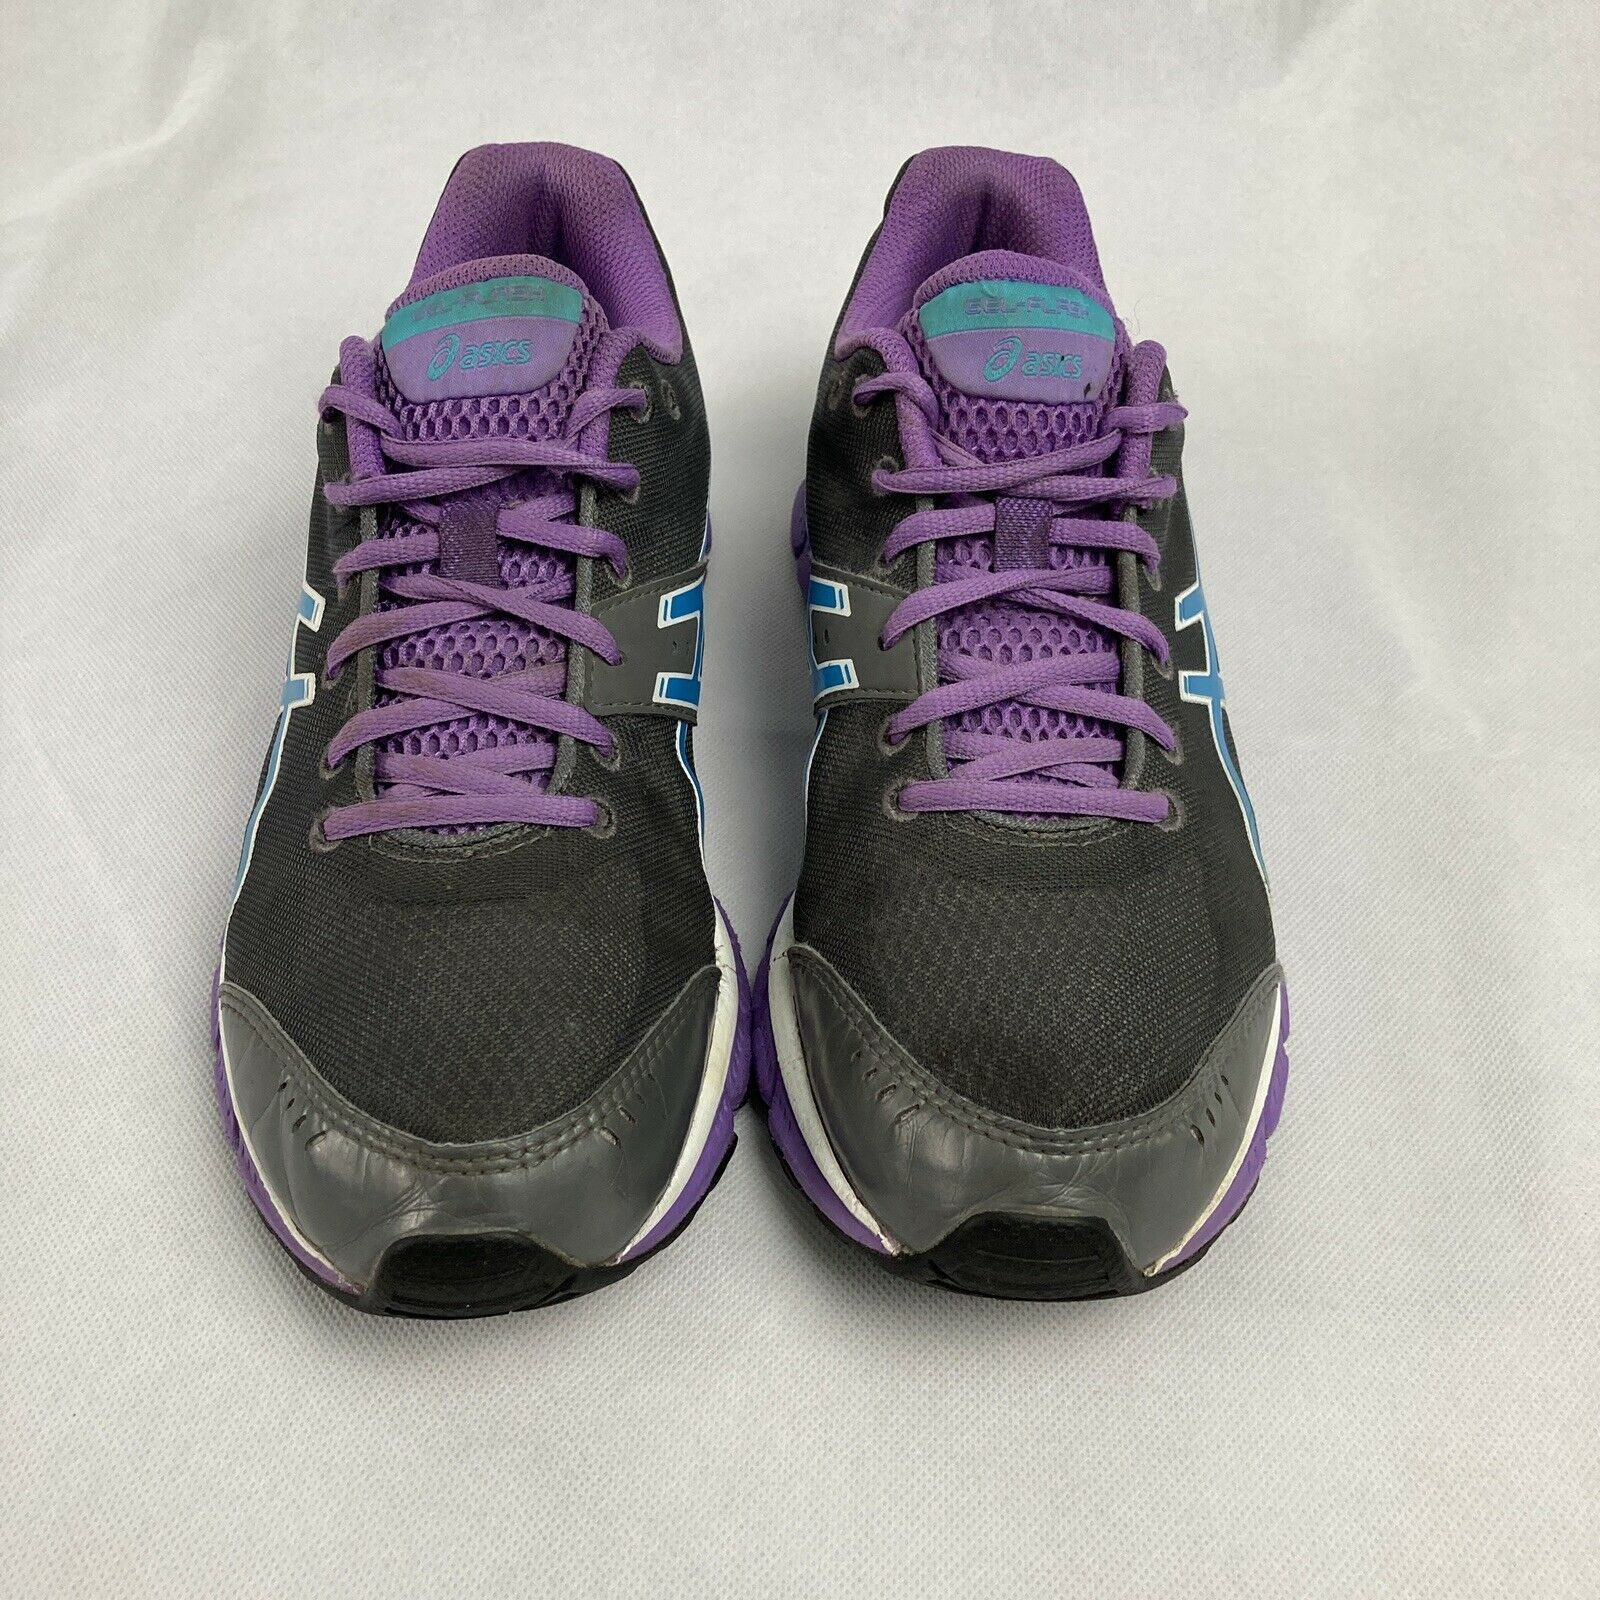 Primary image for Womens Asics Gel Flash Running Training Black/ Purple Shoes size 9.5 T2J5N